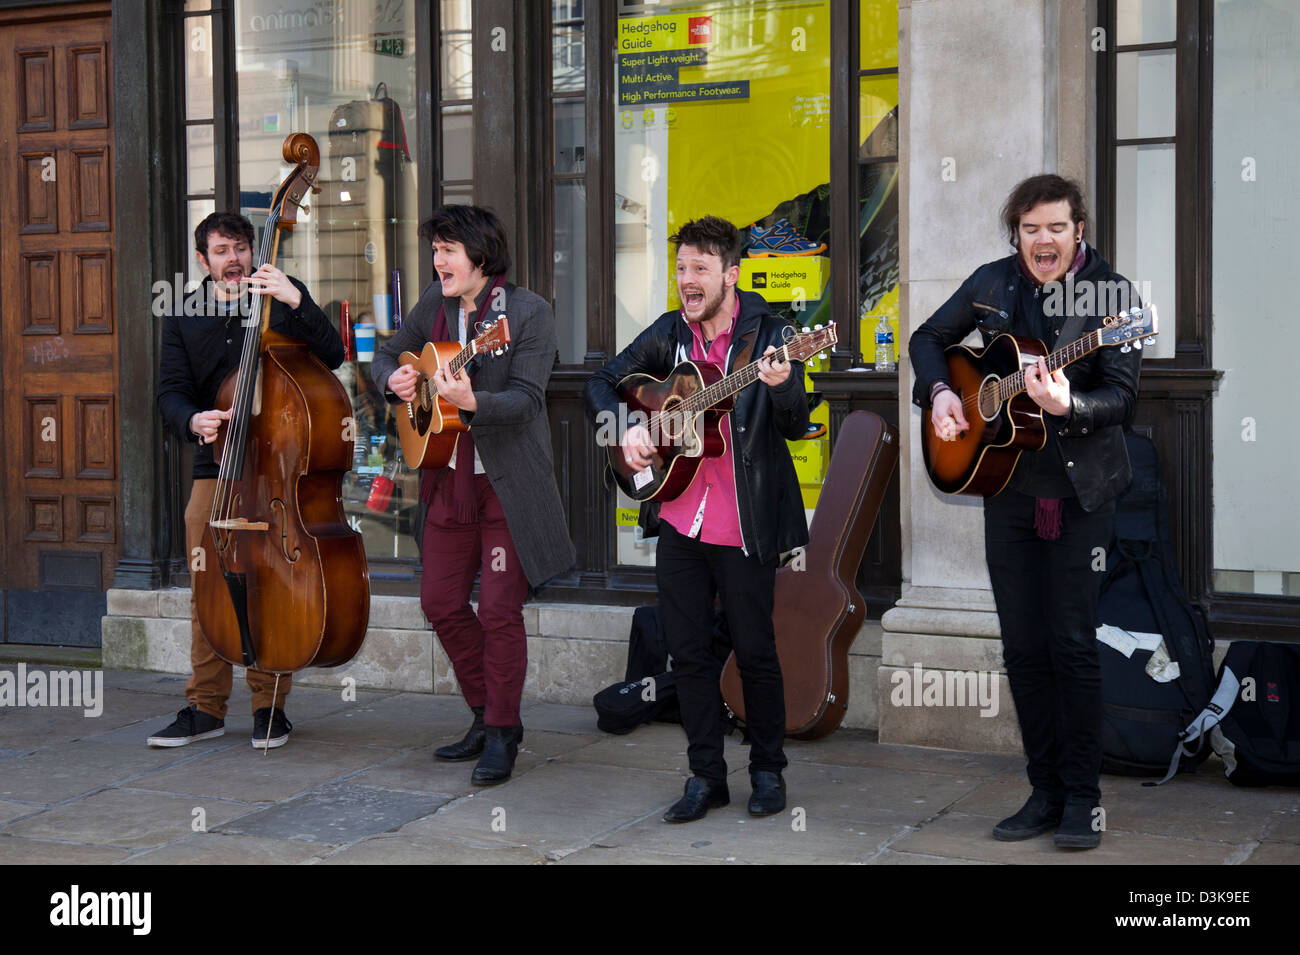 Licensed Buskers, teenagers in a Musical Group, a boy band quartet singing for donations.  A Group of four musicians - Stock Image